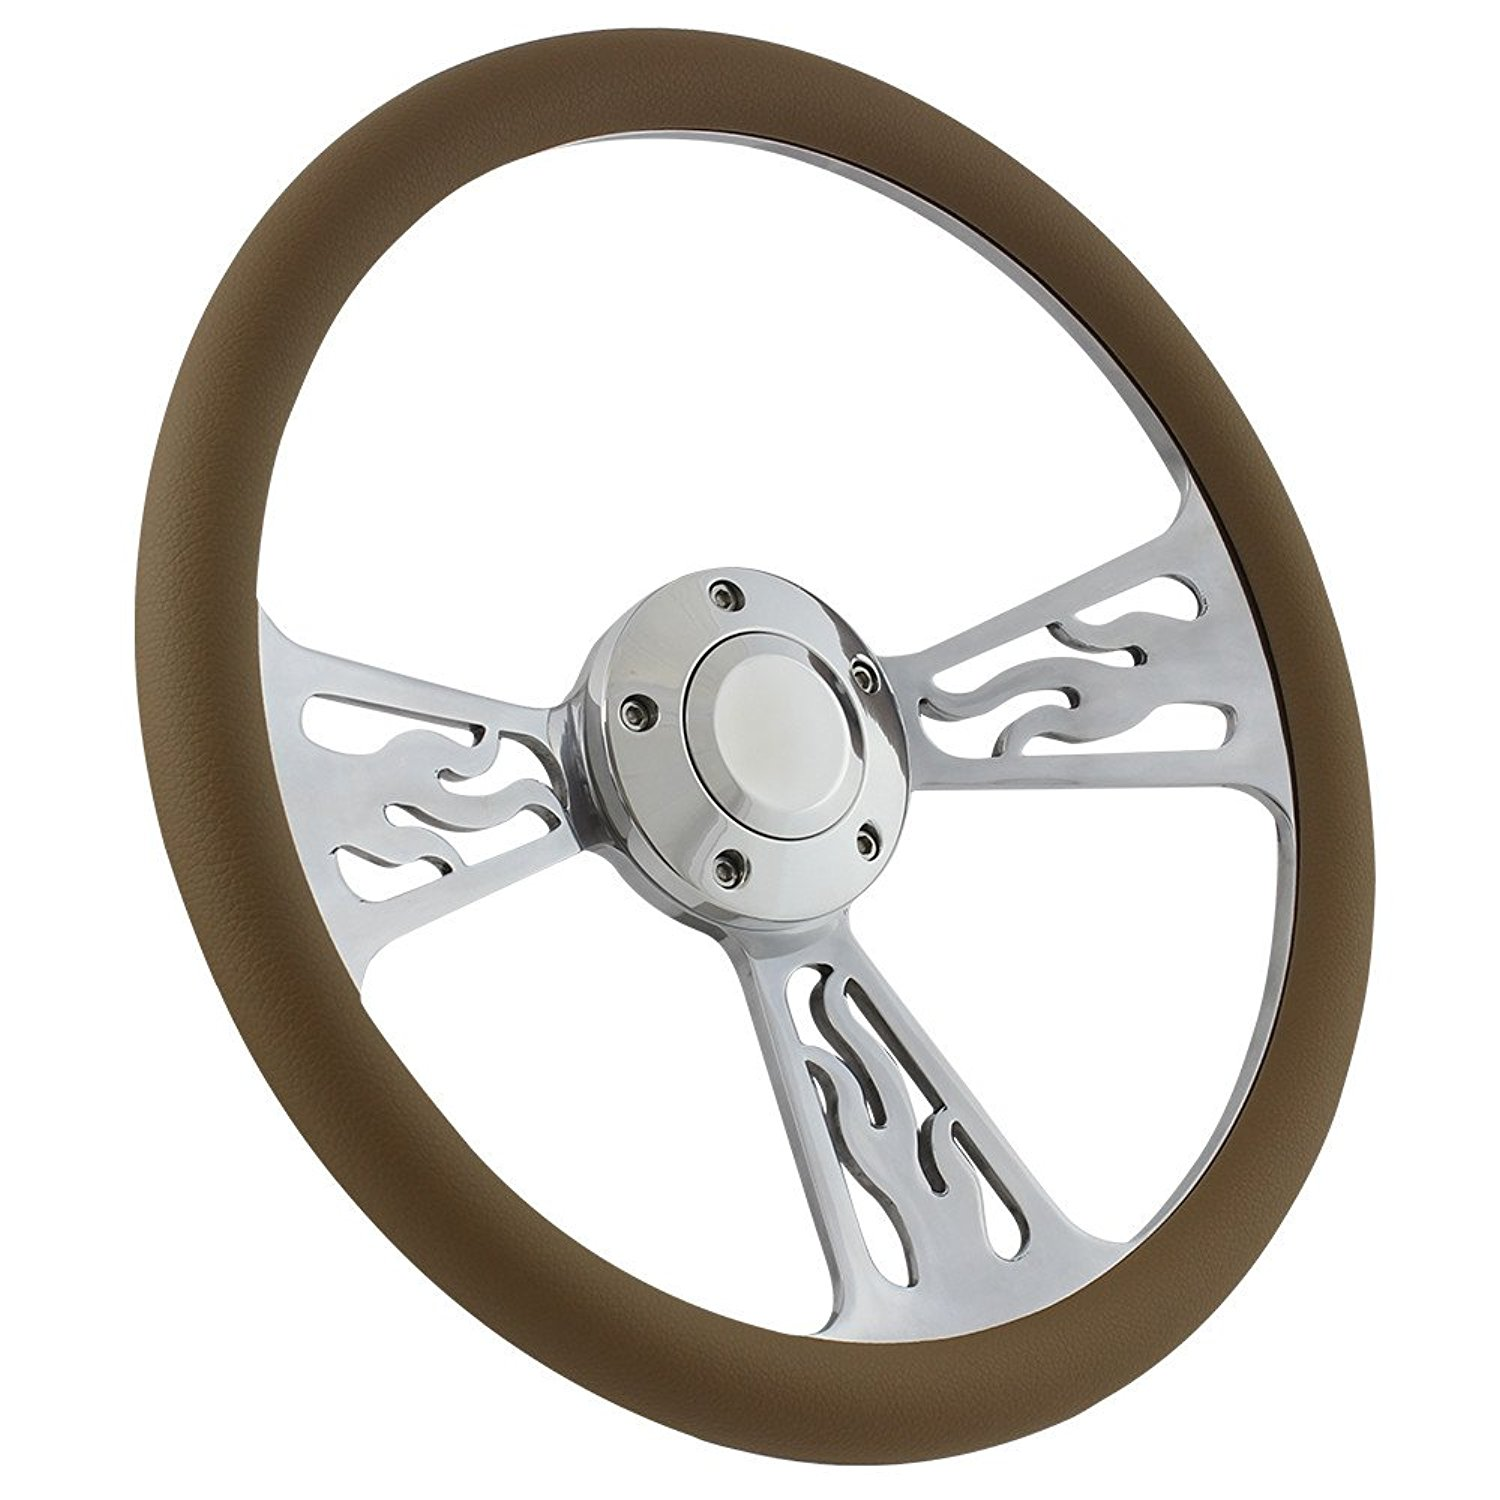 Flame Steering Wheel 5-bolt 14 Inch Aluminum with Tan Wrap and Horn